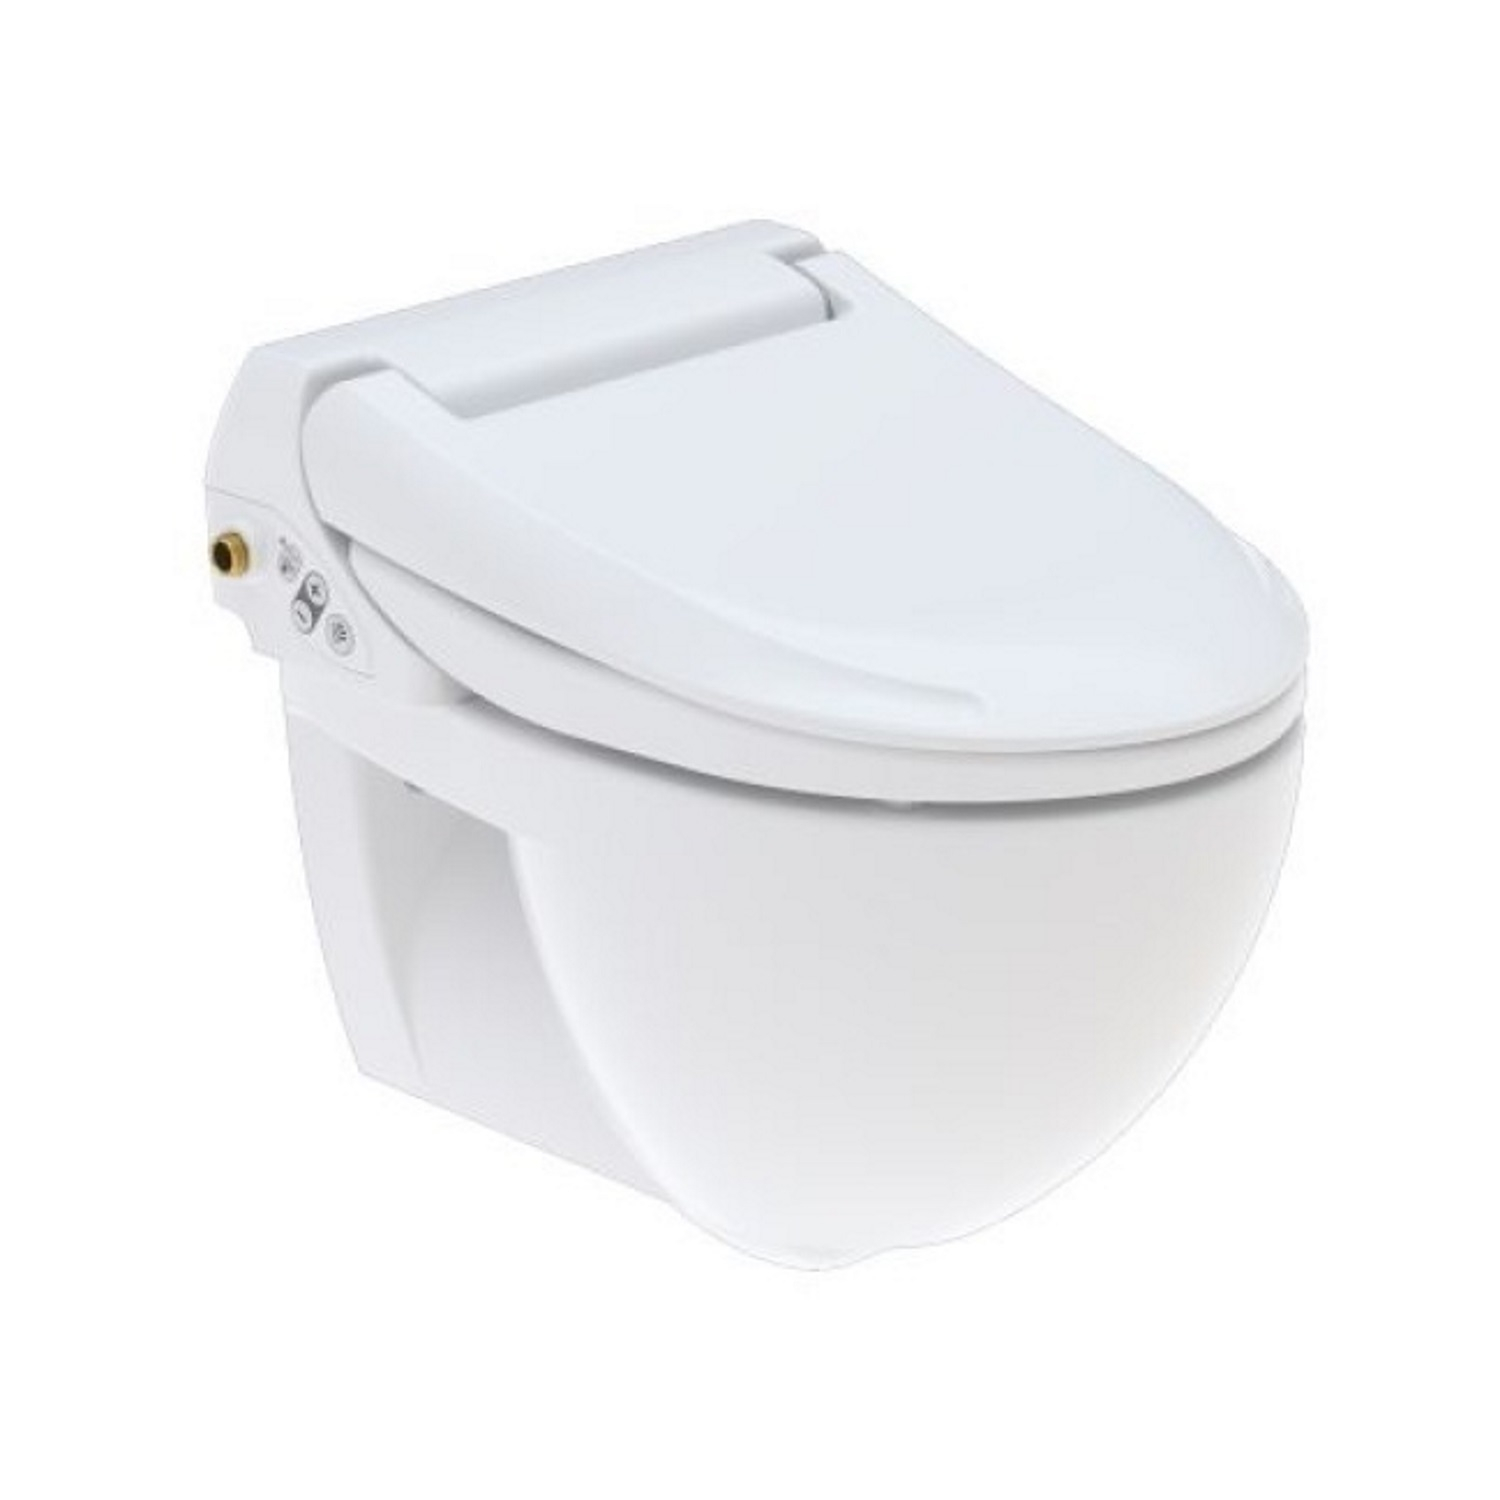 Geberit Aquaclean 4000 Douche Wc Met Closet Model 1 (compl.met Wateraansl Wit